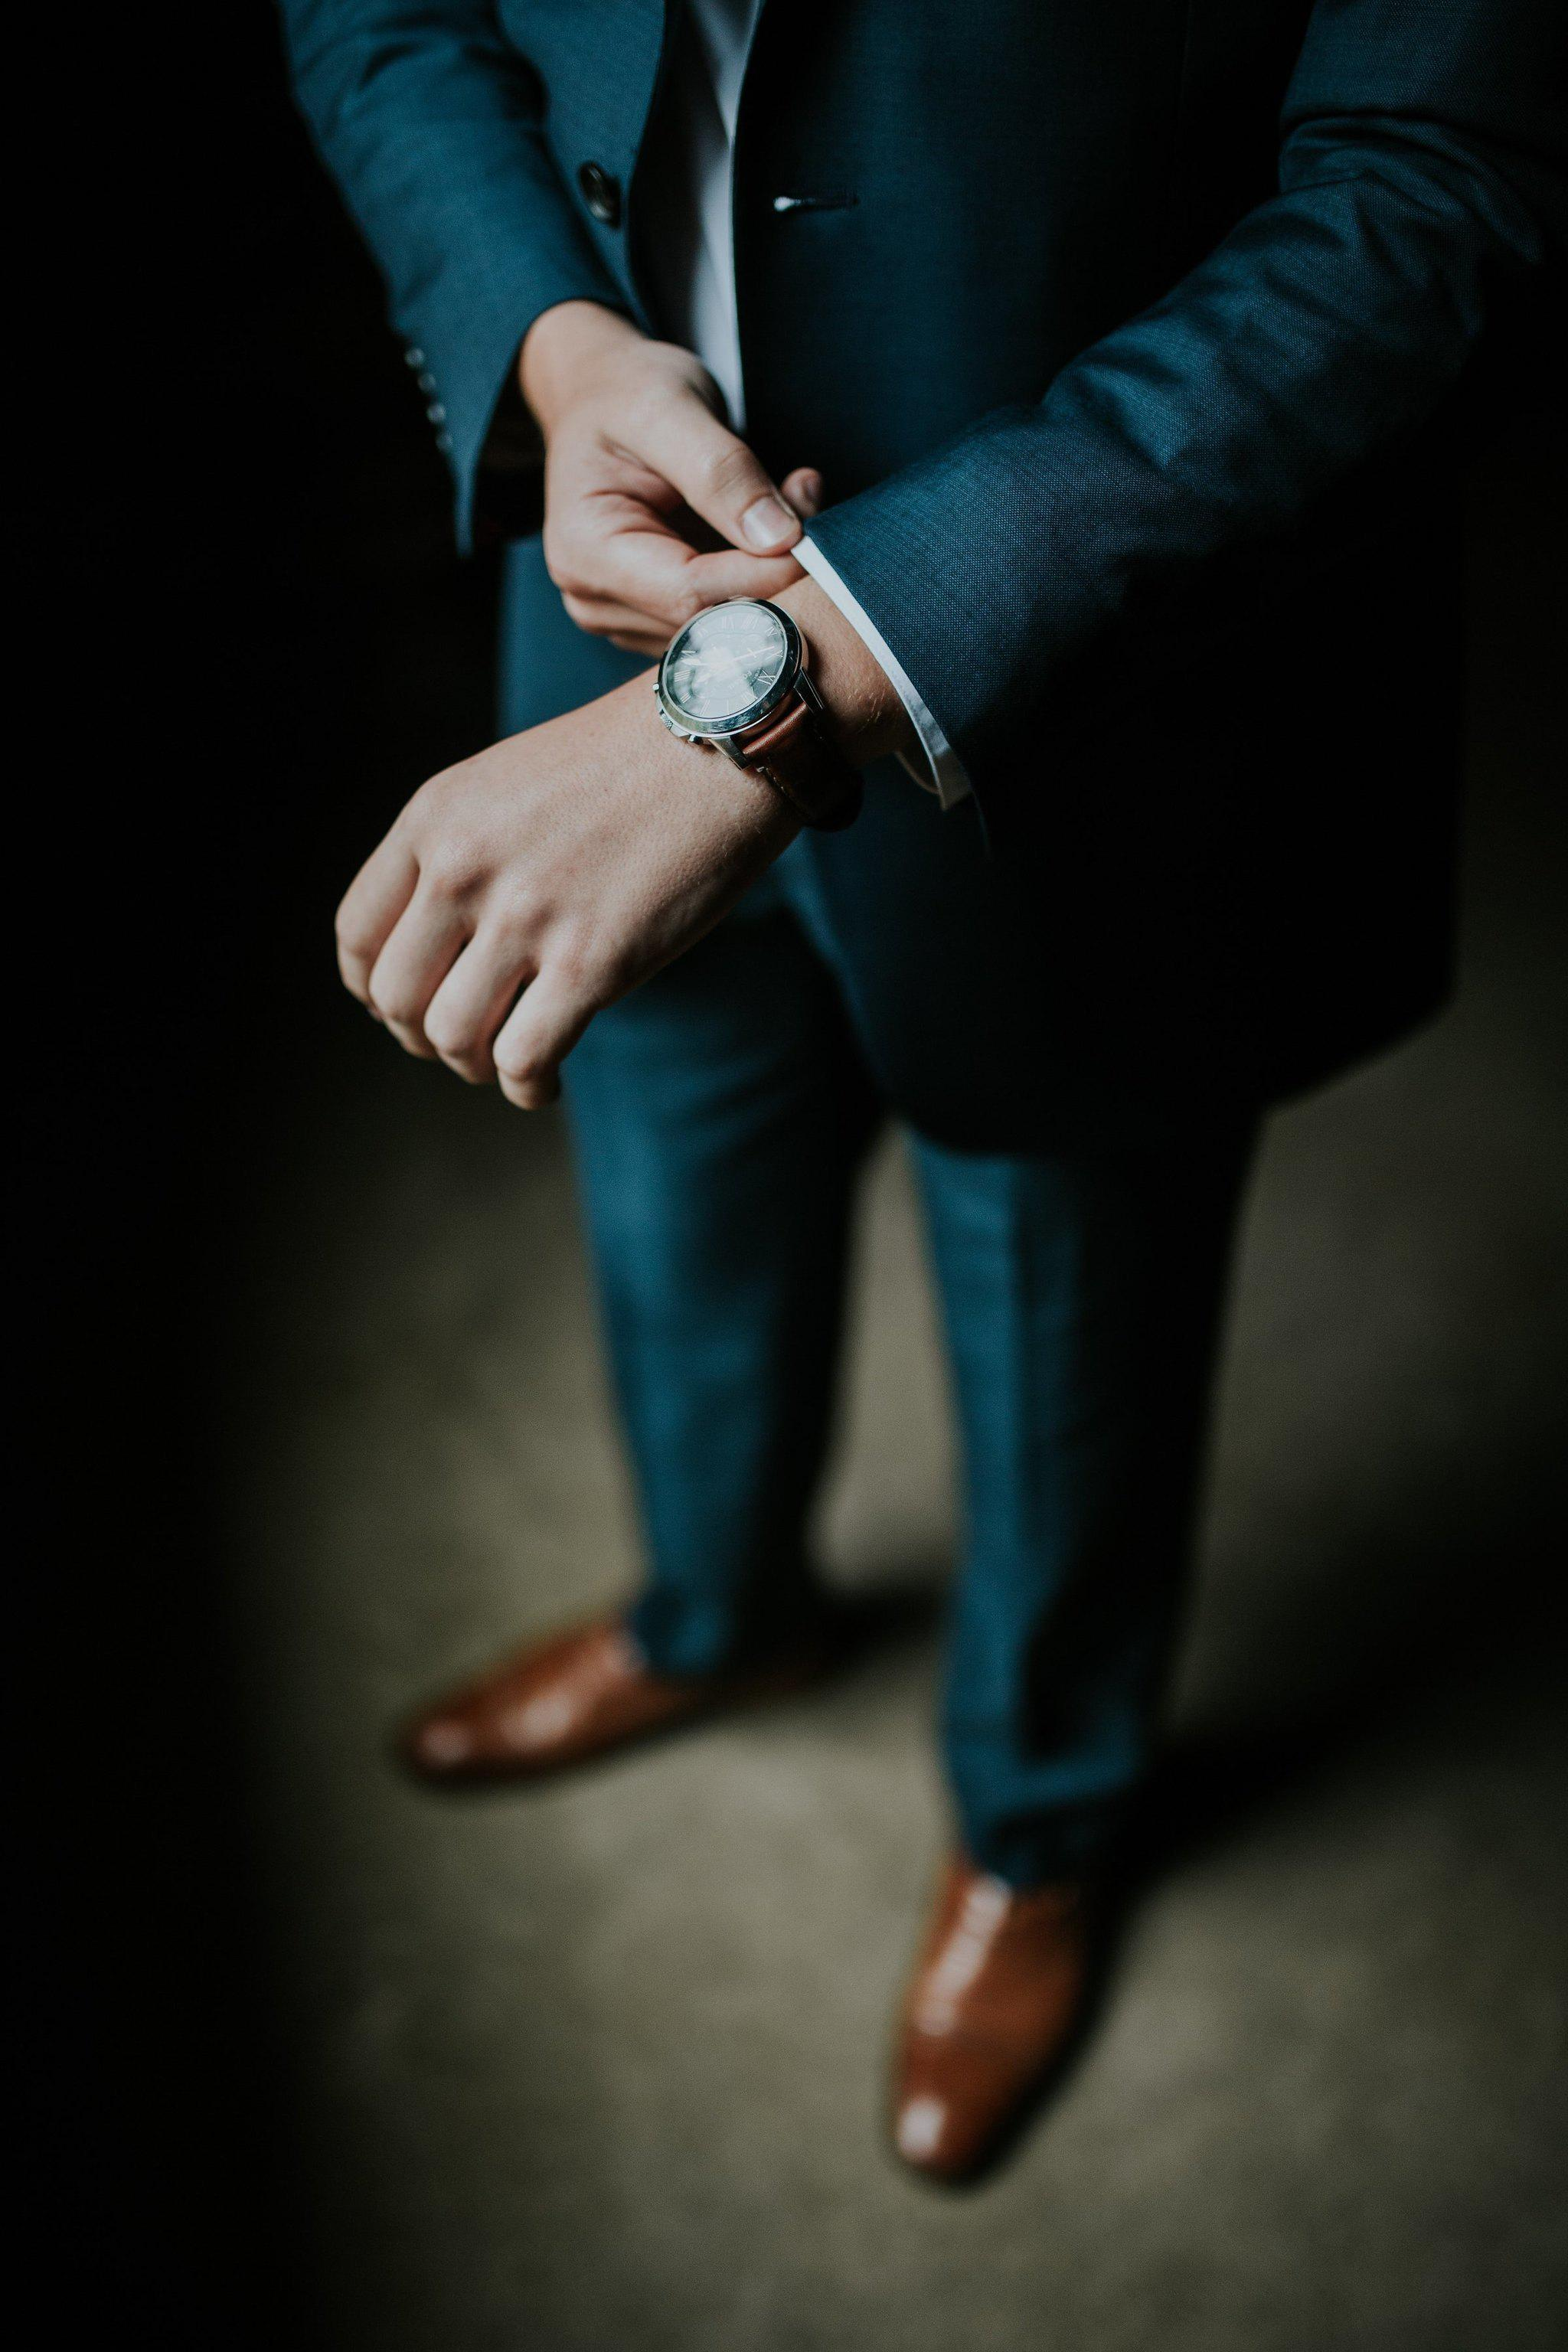 Men's Watches for Office Wear